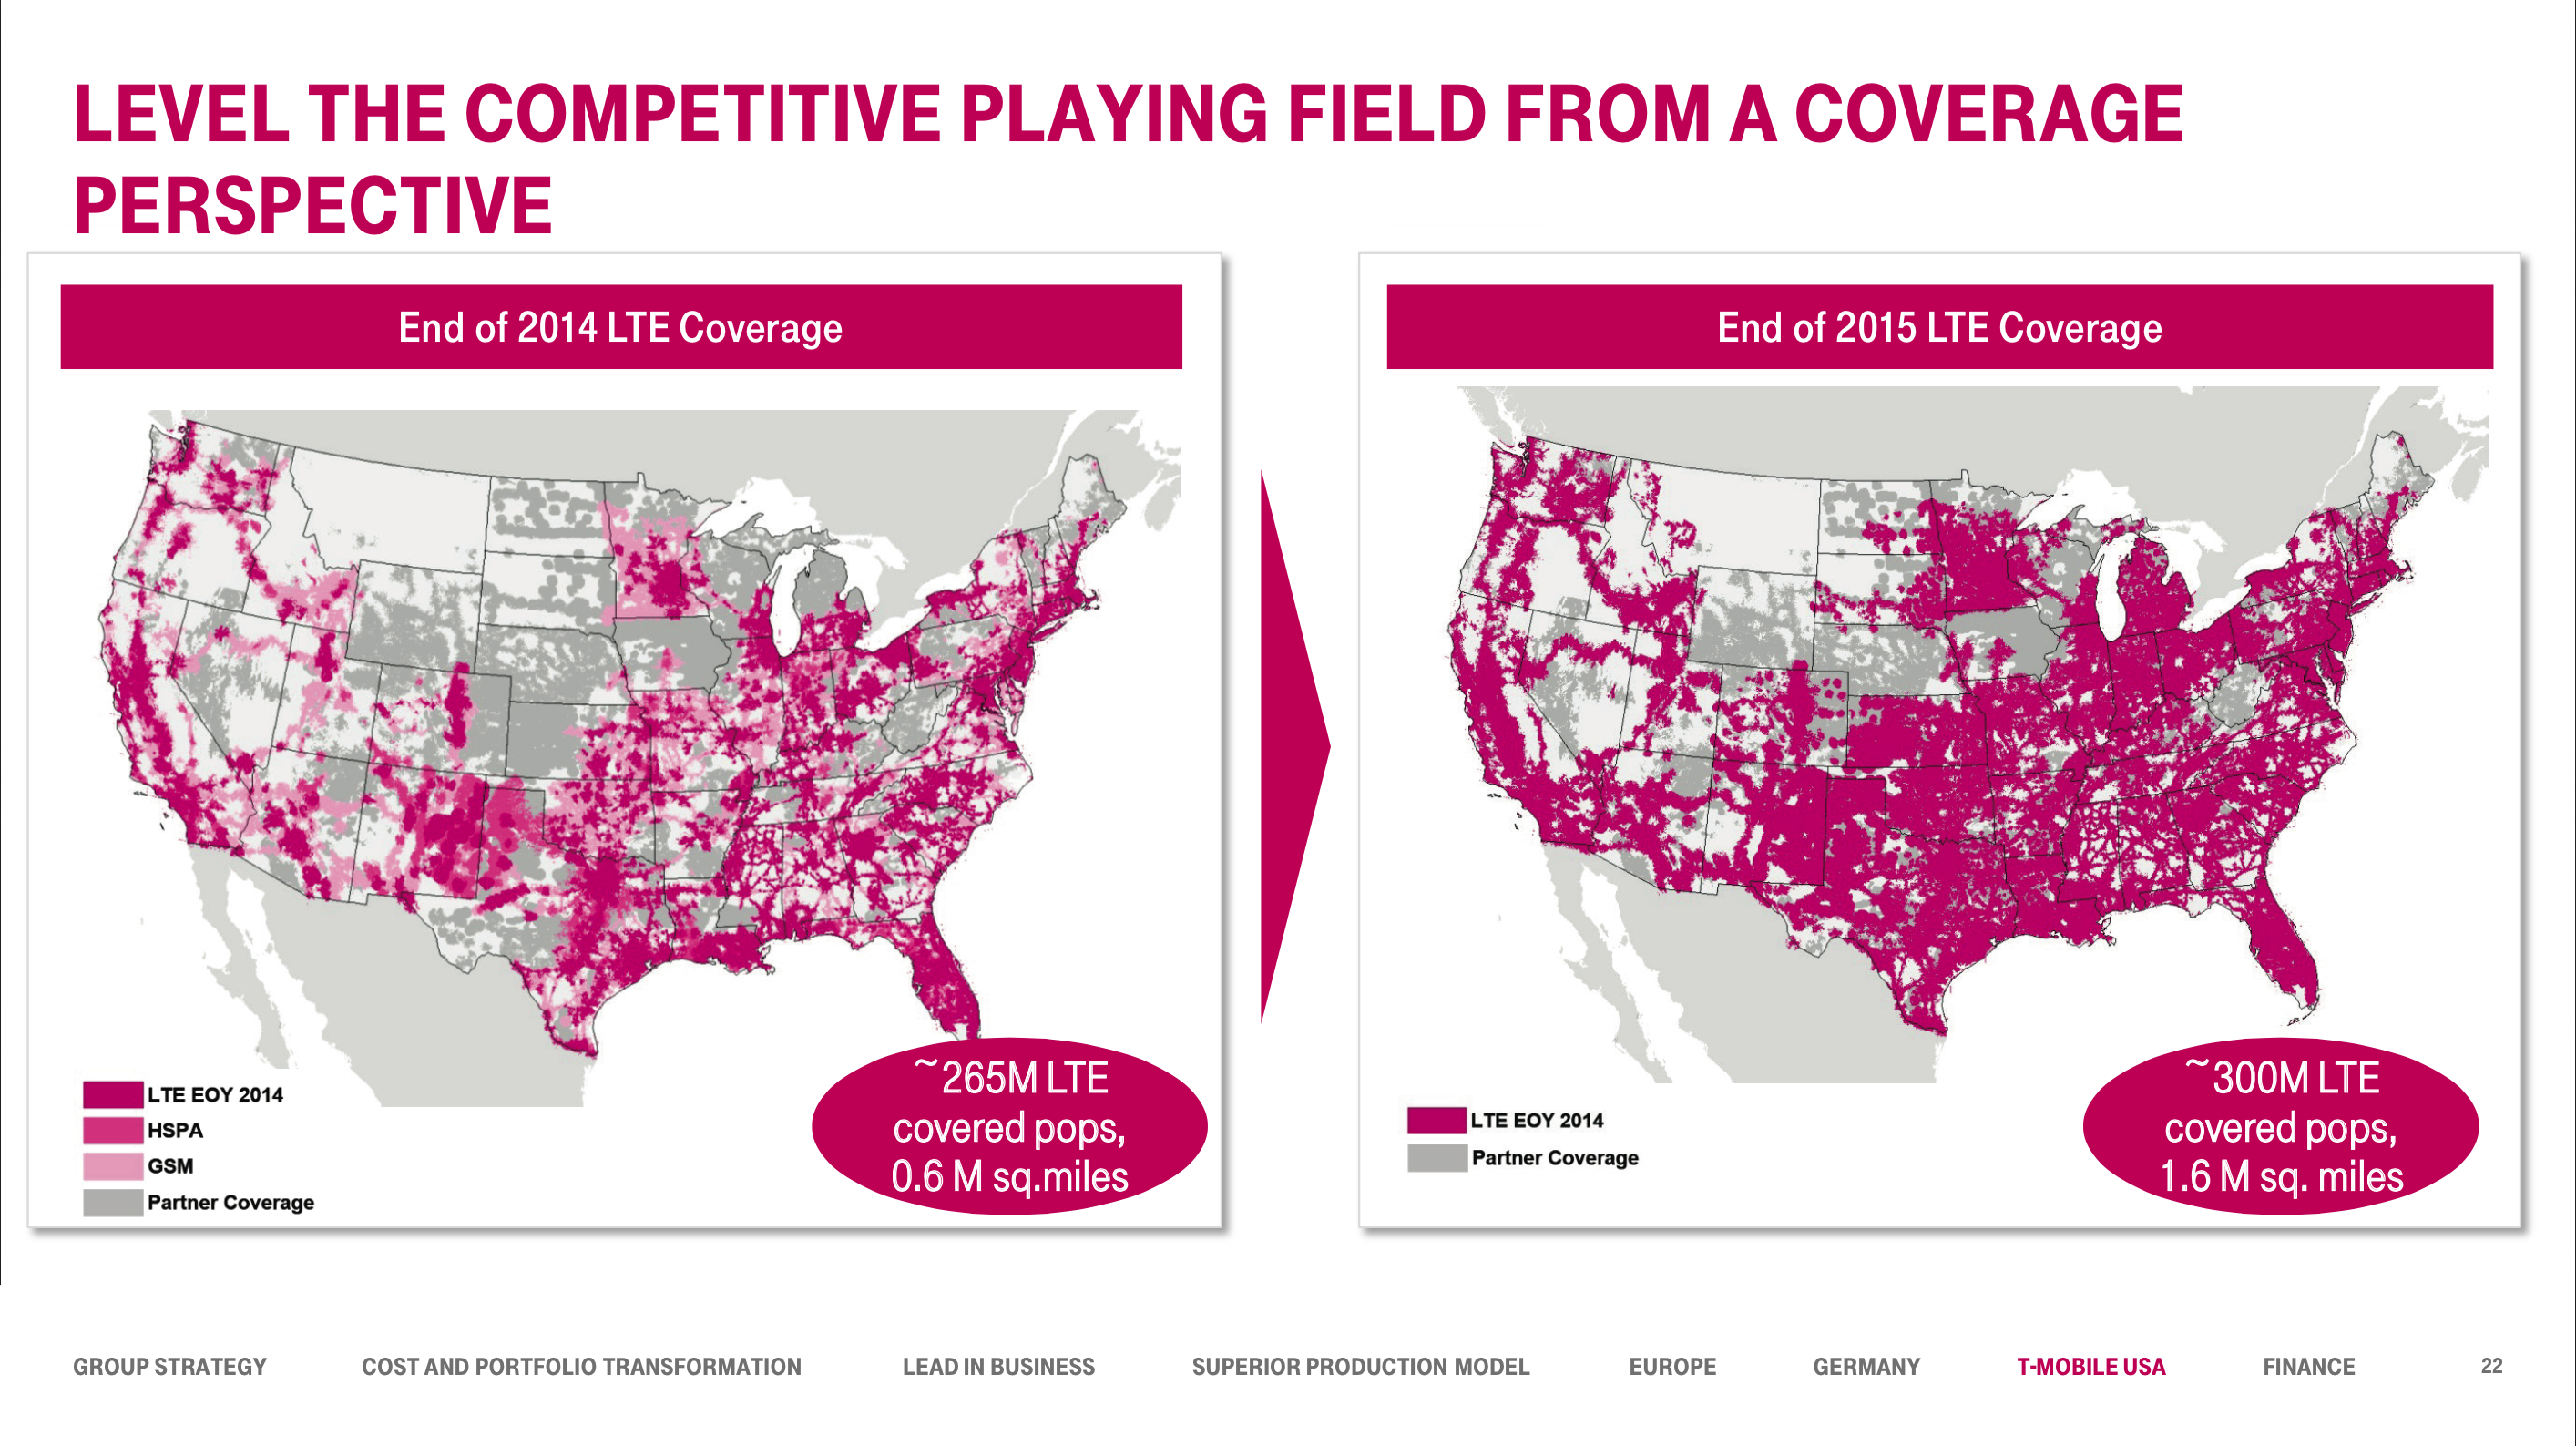 T-Mobile\'s Projection Coverage Expansion Map for End of 2015